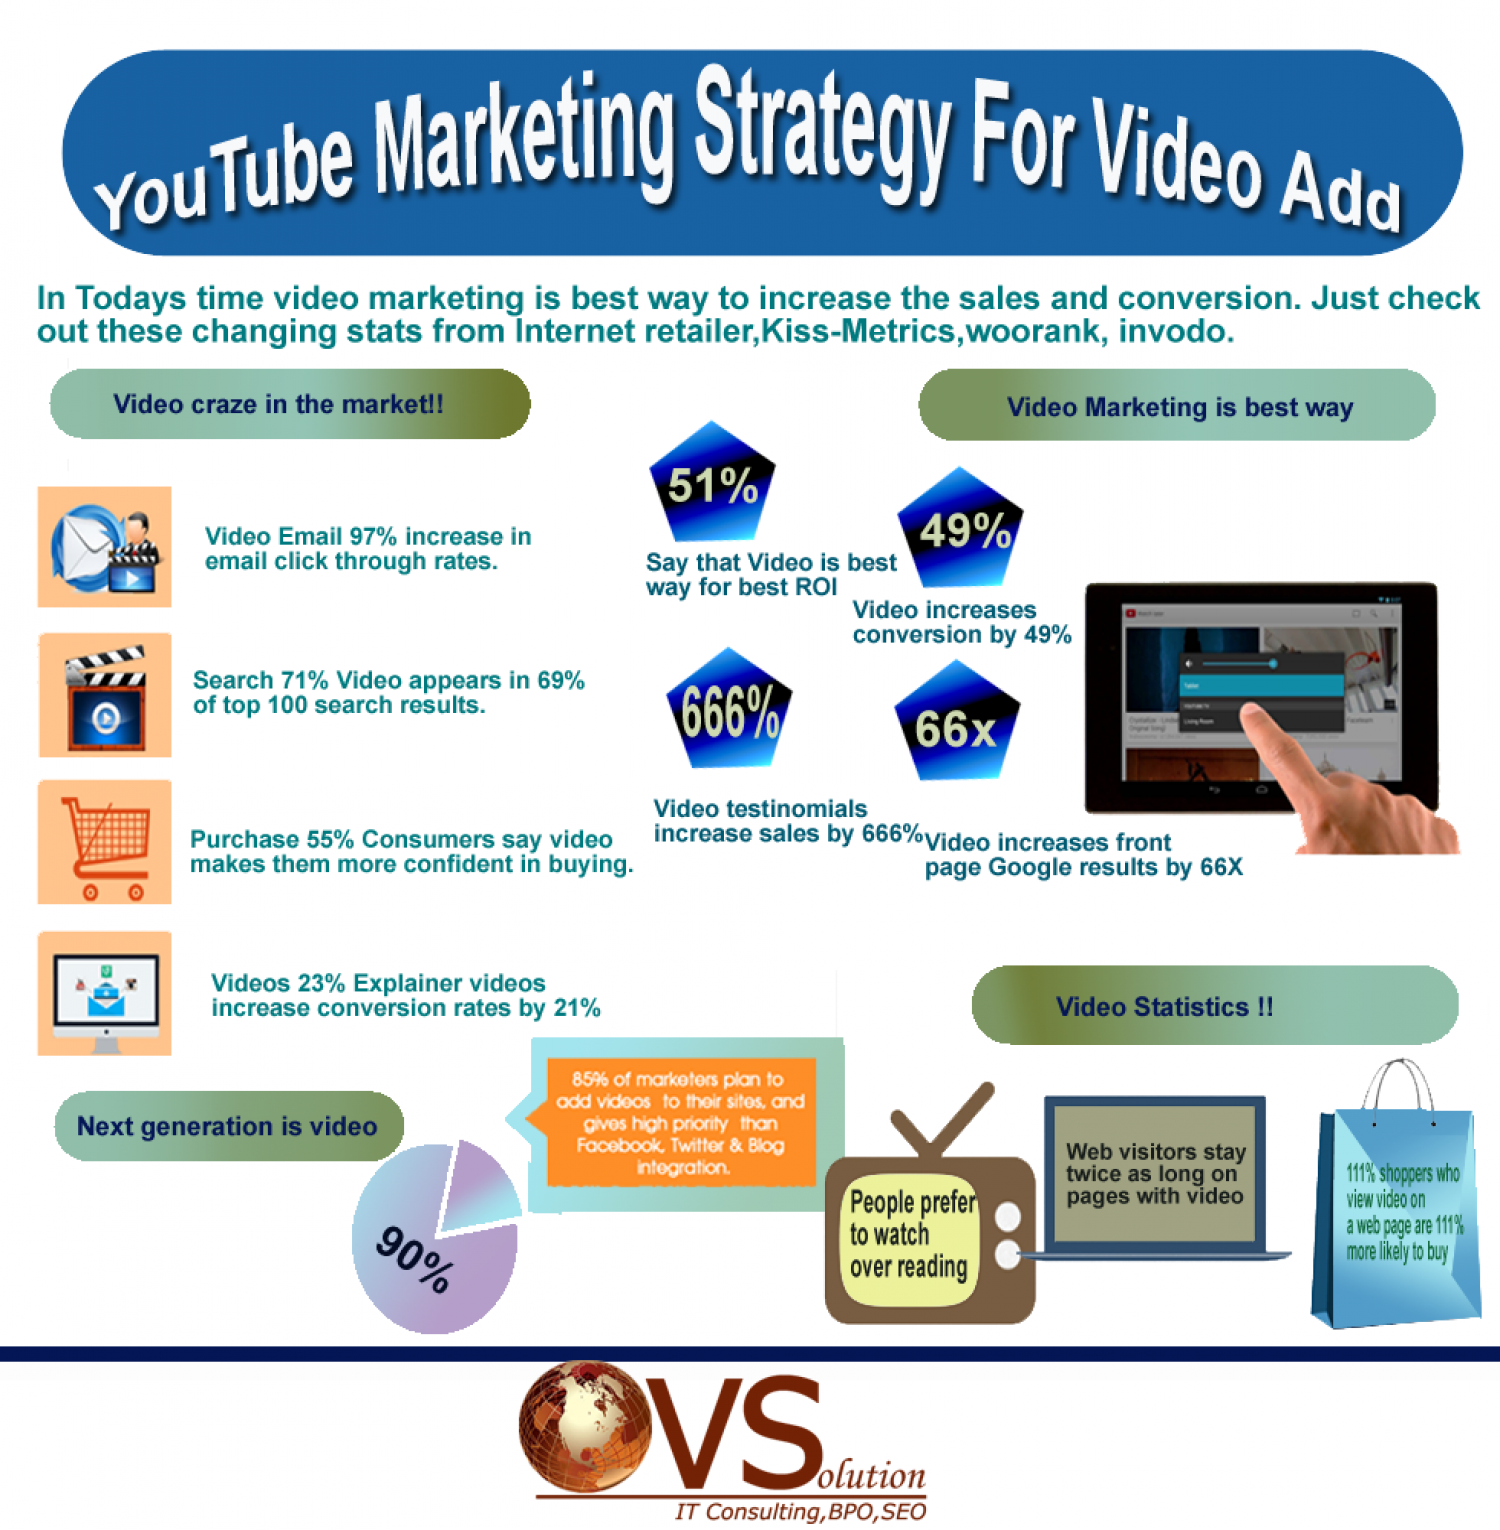 YouTube Marketing Strategy For Video Add Infographic